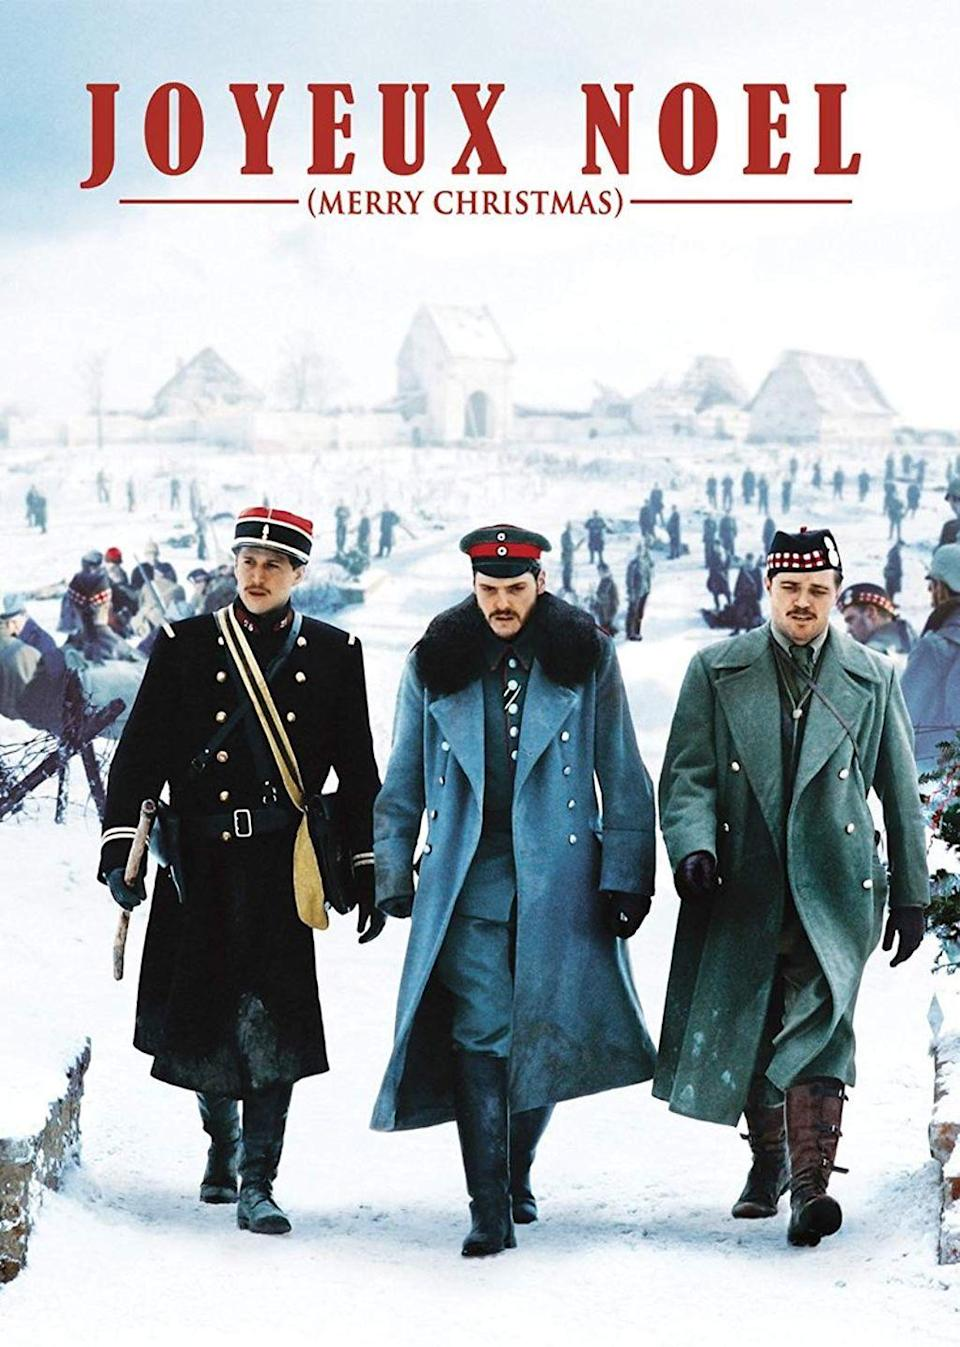 """<p>You might not have heard of this French film about the Christmas truce during WWI, but it's worth watching. It was even nominated for the best foreign language Academy Award in 2006.</p><p><a class=""""link rapid-noclick-resp"""" href=""""https://www.amazon.com/Joyeux-Merry-Christmas-Diane-Kruger/dp/B000KNHCO4/?tag=syn-yahoo-20&ascsubtag=%5Bartid%7C10055.g.1315%5Bsrc%7Cyahoo-us"""" rel=""""nofollow noopener"""" target=""""_blank"""" data-ylk=""""slk:WATCH NOW"""">WATCH NOW</a></p>"""